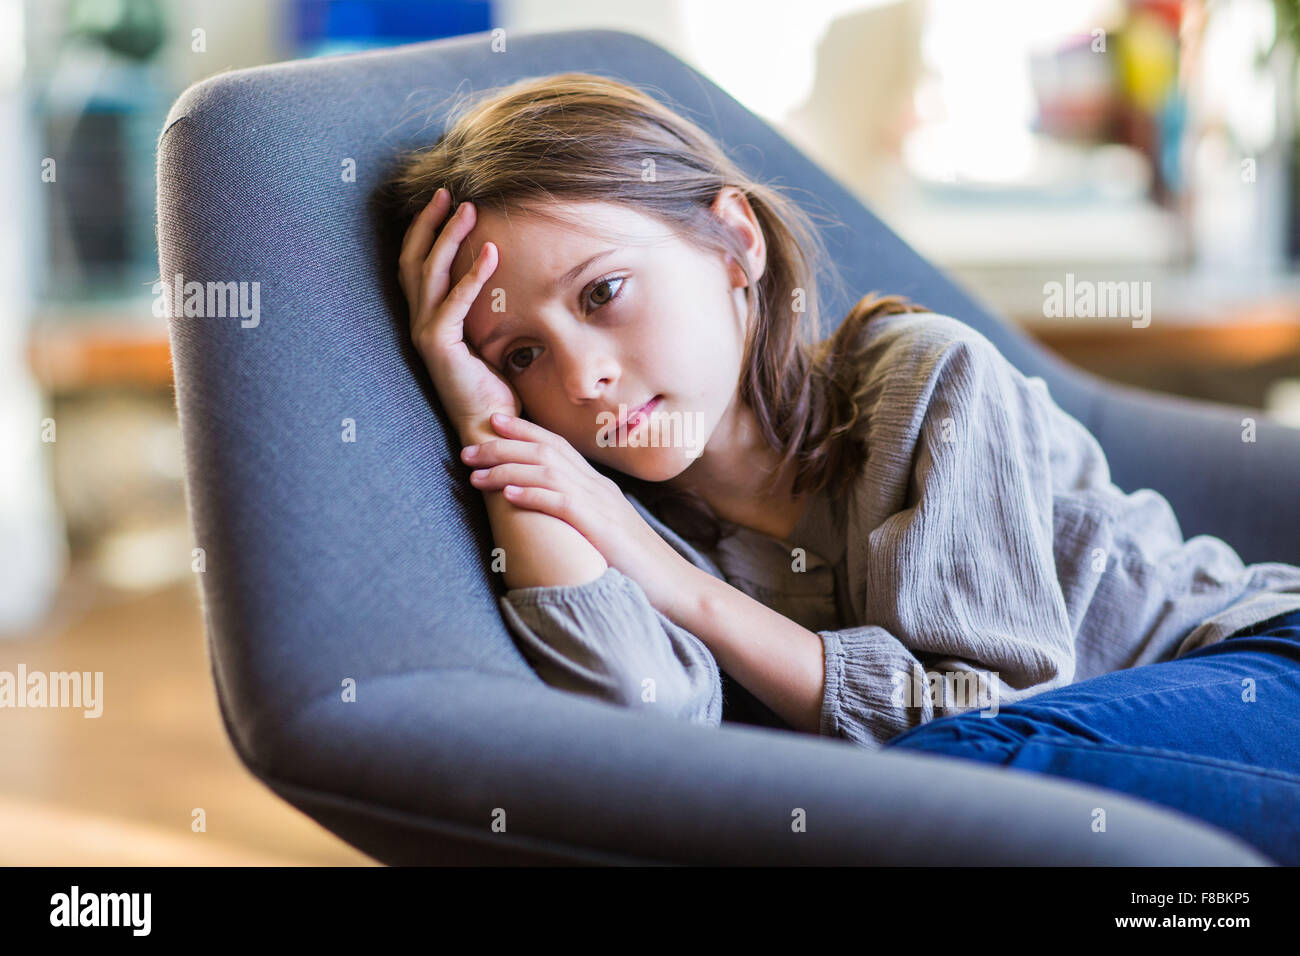 8 year-old girl. - Stock Image